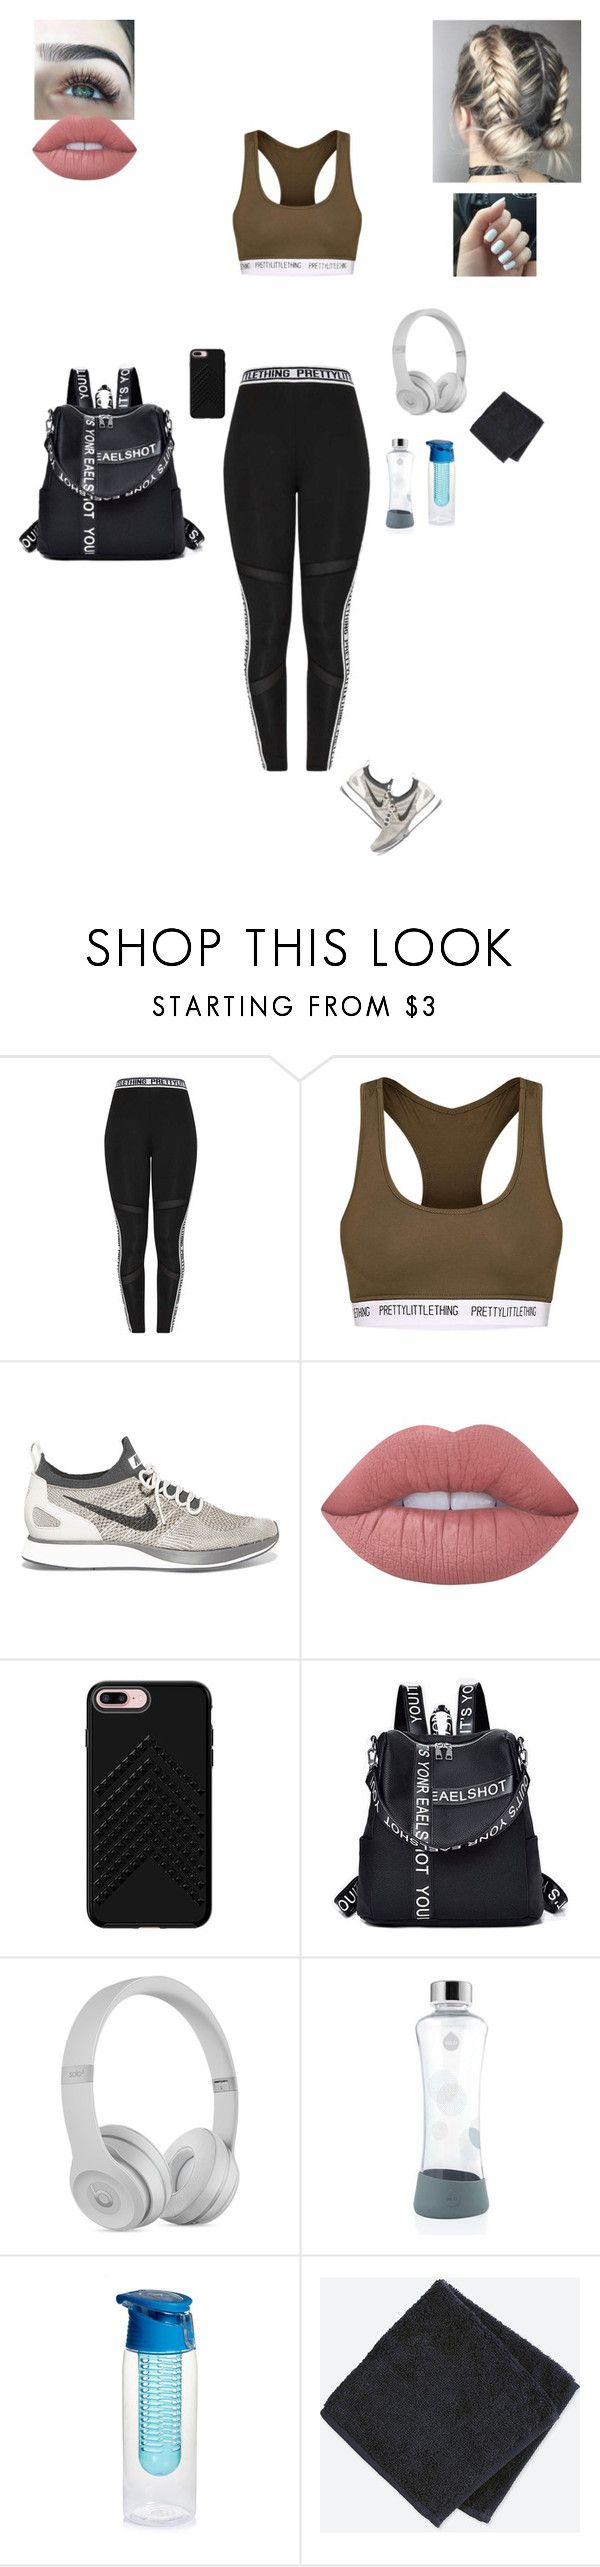 """""""Heading to the Gym :)"""" by sonialicetmartinez ❤ liked on Polyvore featuring NIKE, Lime Crime, Rebecca Minkoff and Uniqlo"""